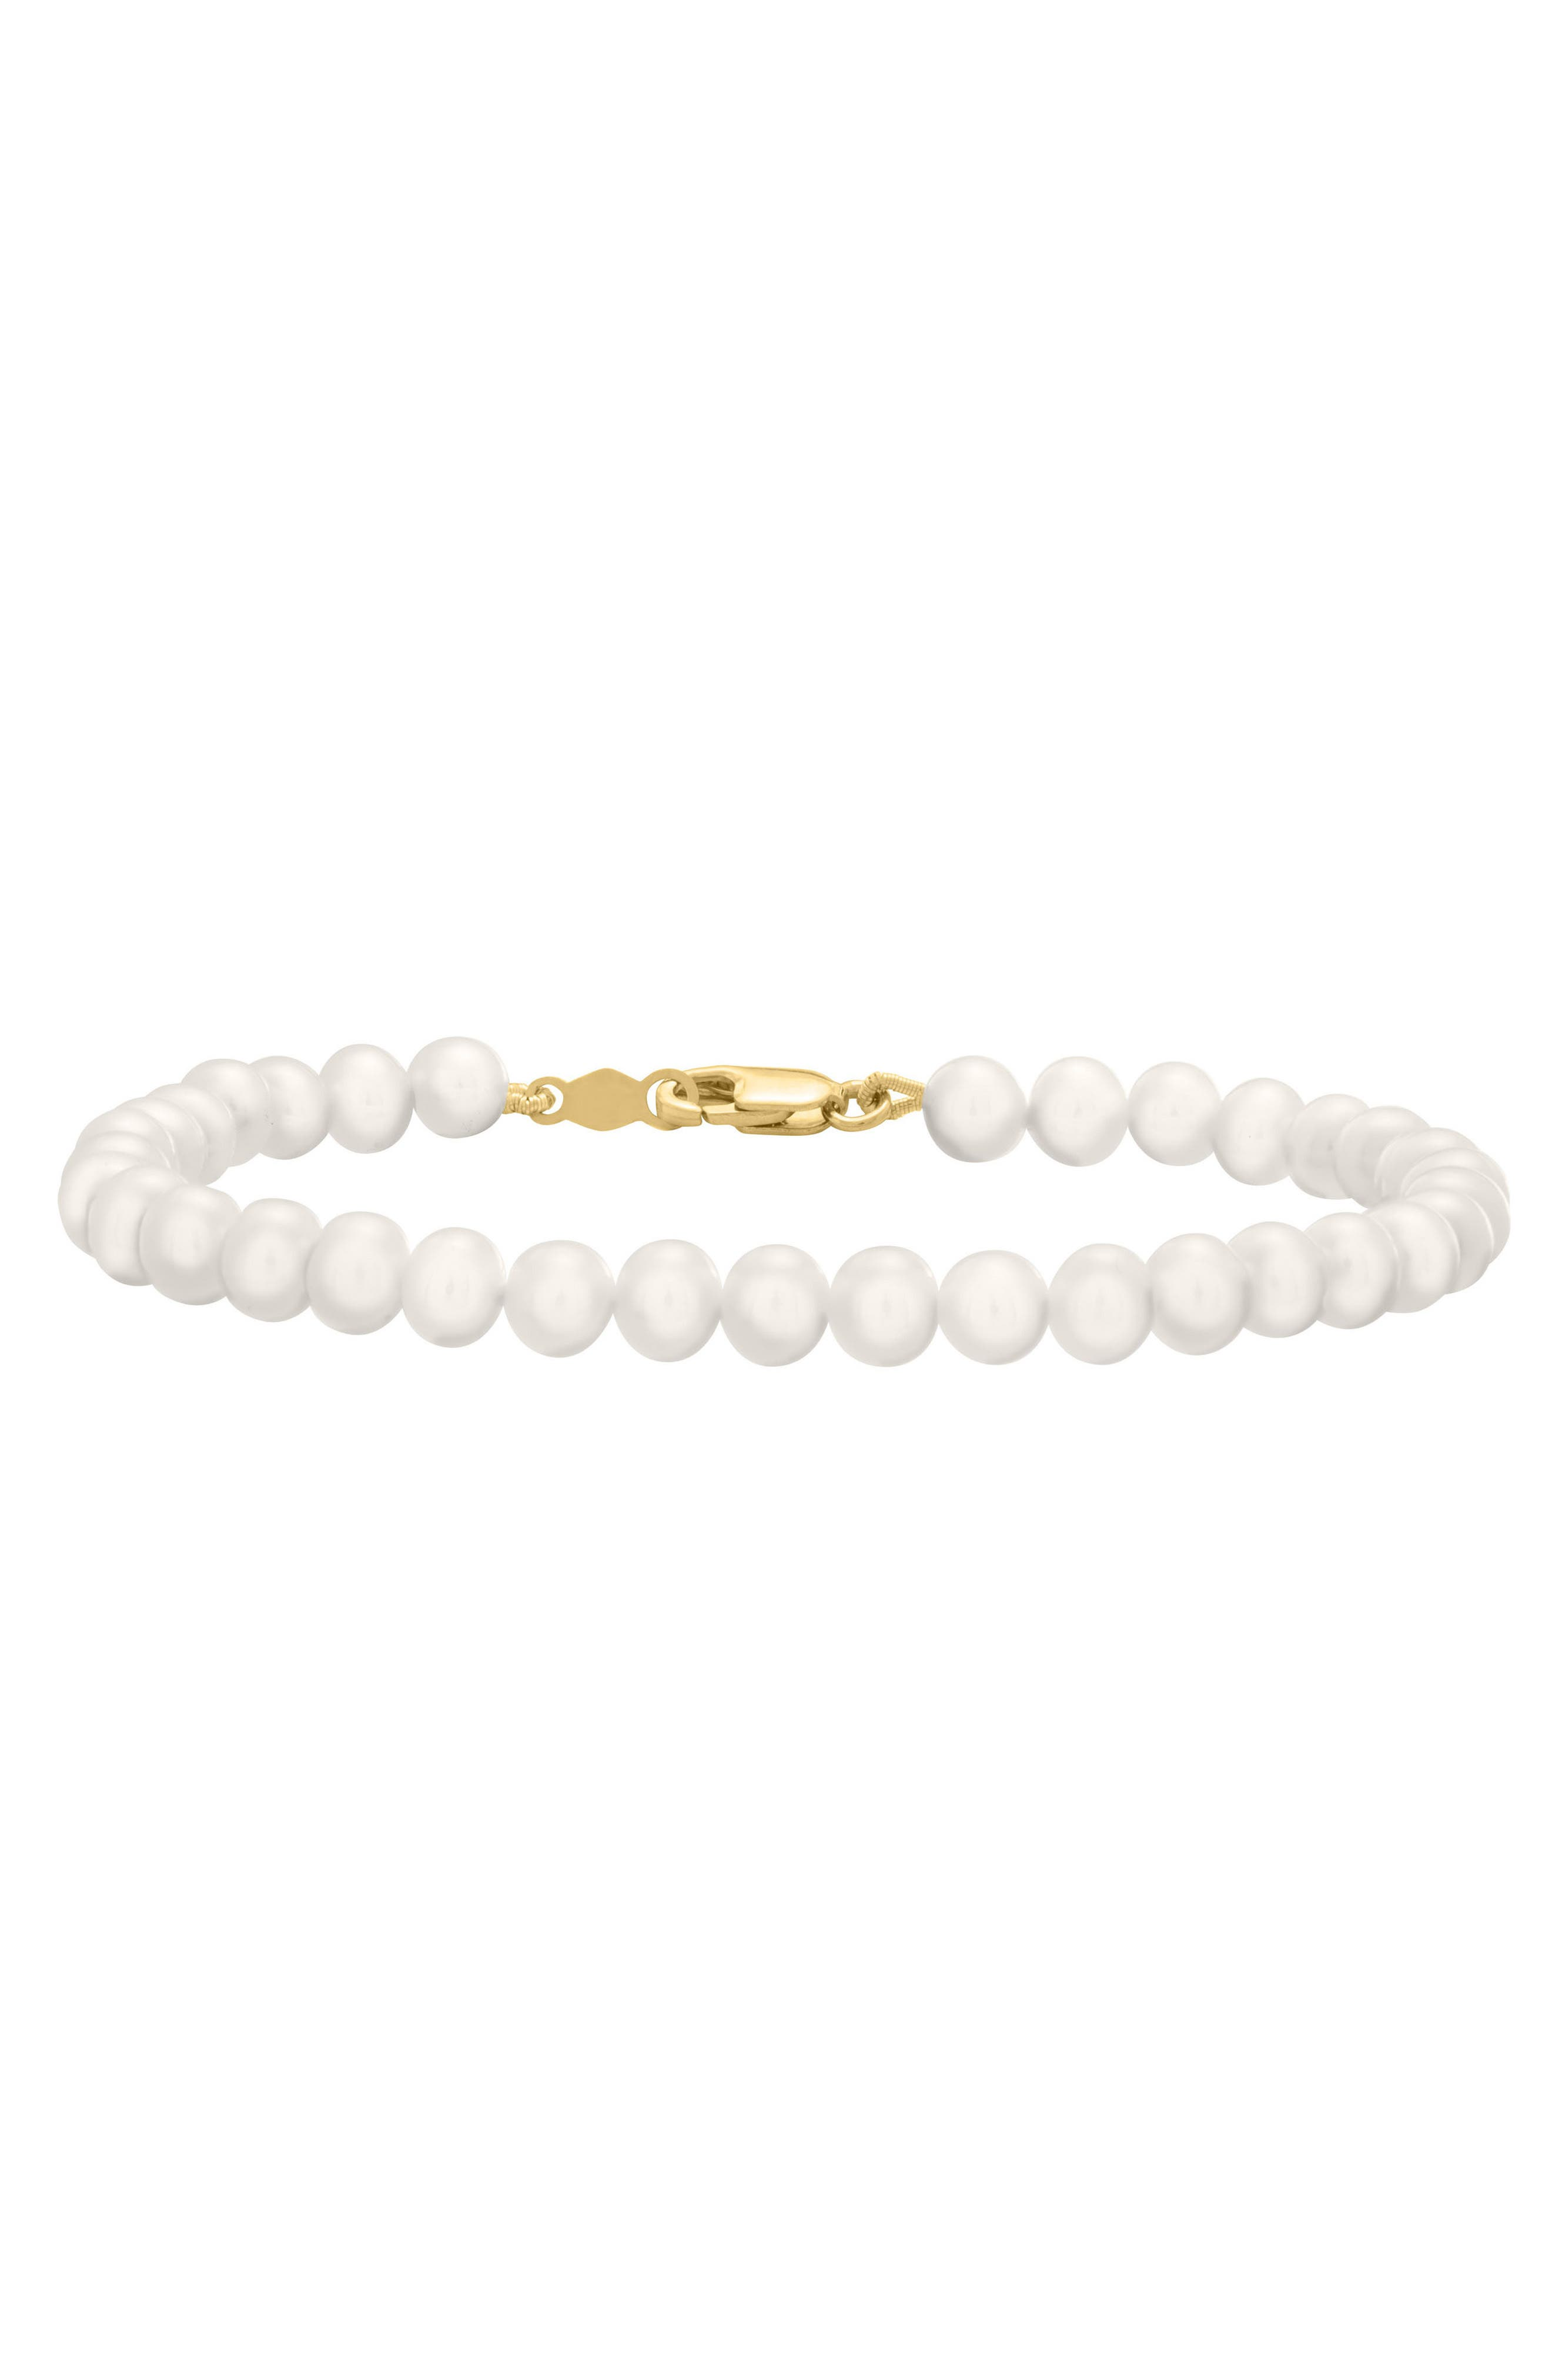 Gold & Cultured Pearl Bracelet,                             Main thumbnail 1, color,                             GOLD